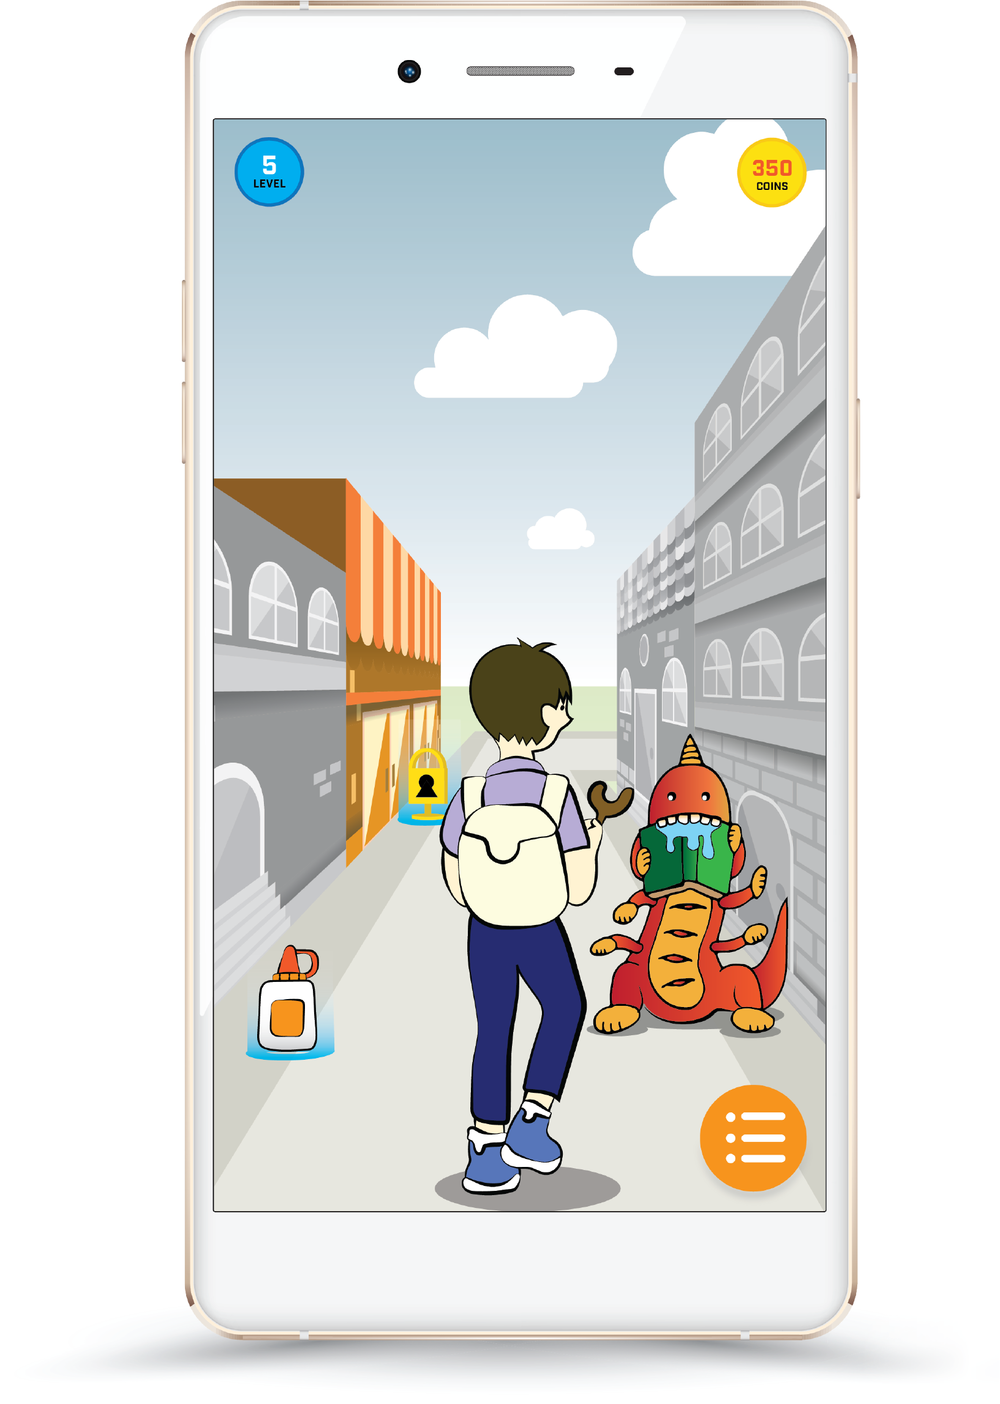 TEENS can be REAL heroes… - Players can find monsters in their neighborhoods and battle the creatures with a slingshot. Monsters represent local community problems related to education, healthcare, the environment, and more.Boss events let you team up with your neighbors to defeat larger community monsters together in real time.